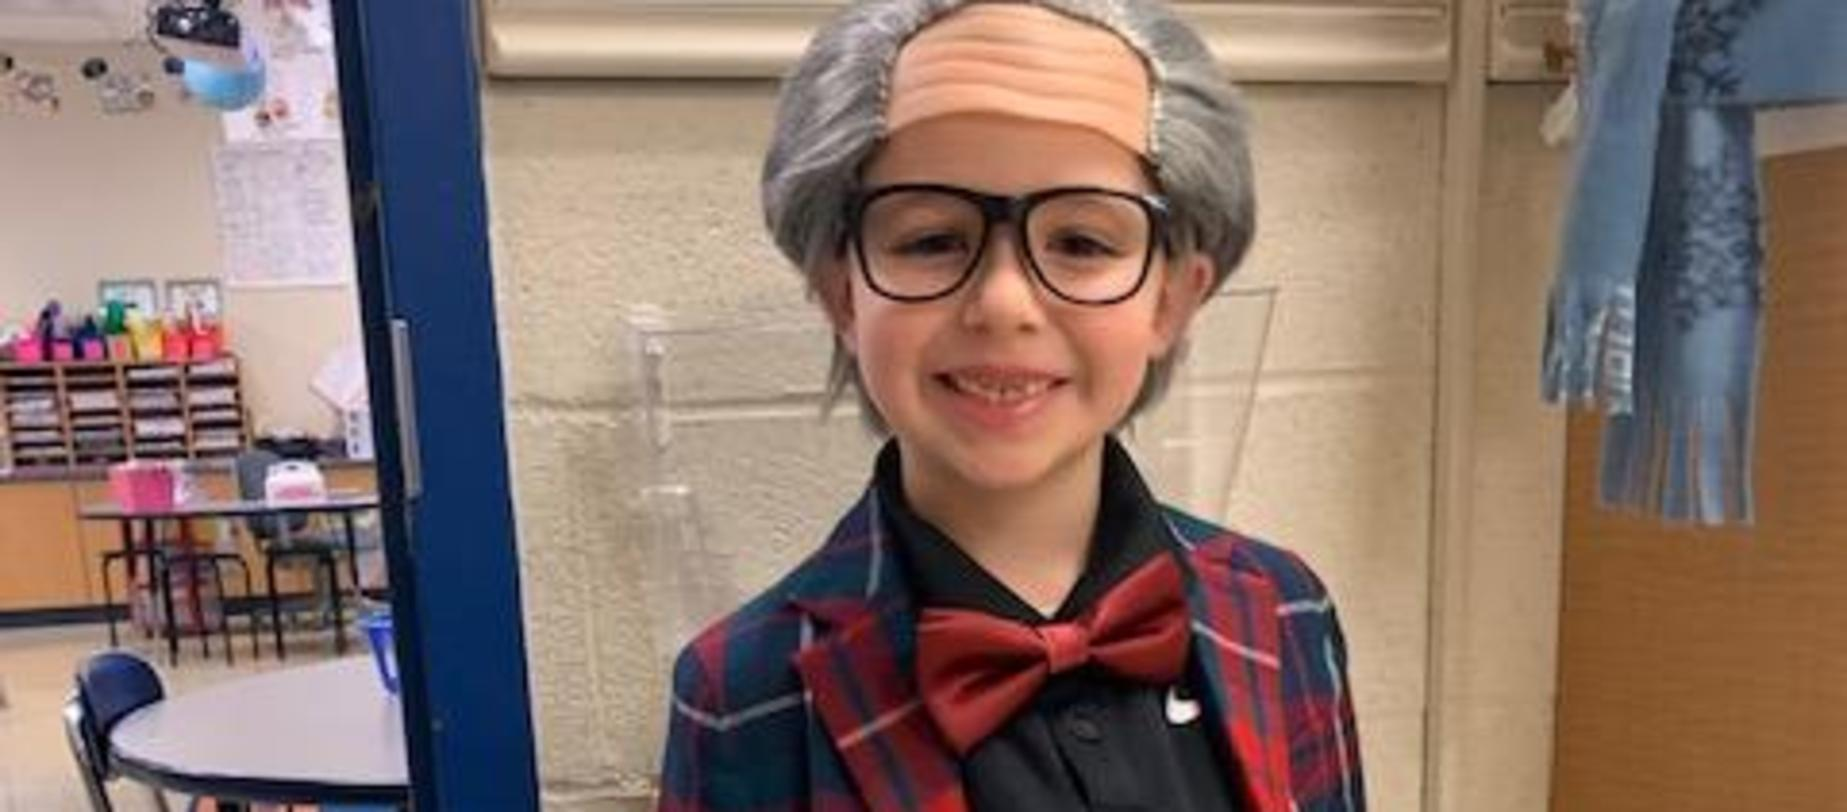 student dressed like he's 100 years old